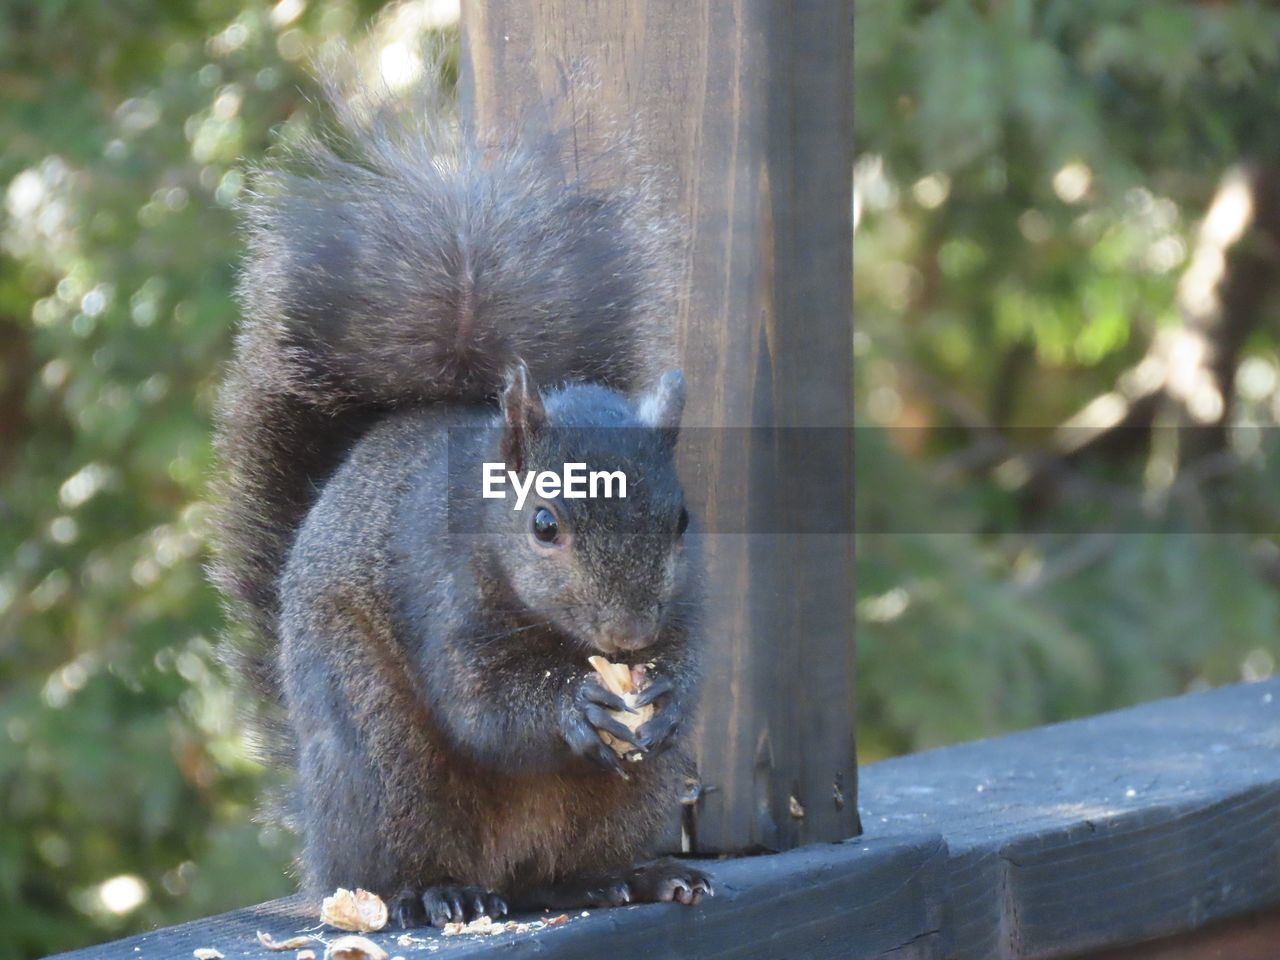 animal, animal themes, animal wildlife, mammal, one animal, animals in the wild, vertebrate, rodent, focus on foreground, squirrel, day, no people, nature, close-up, tree, plant, outdoors, wood - material, sunlight, portrait, whisker